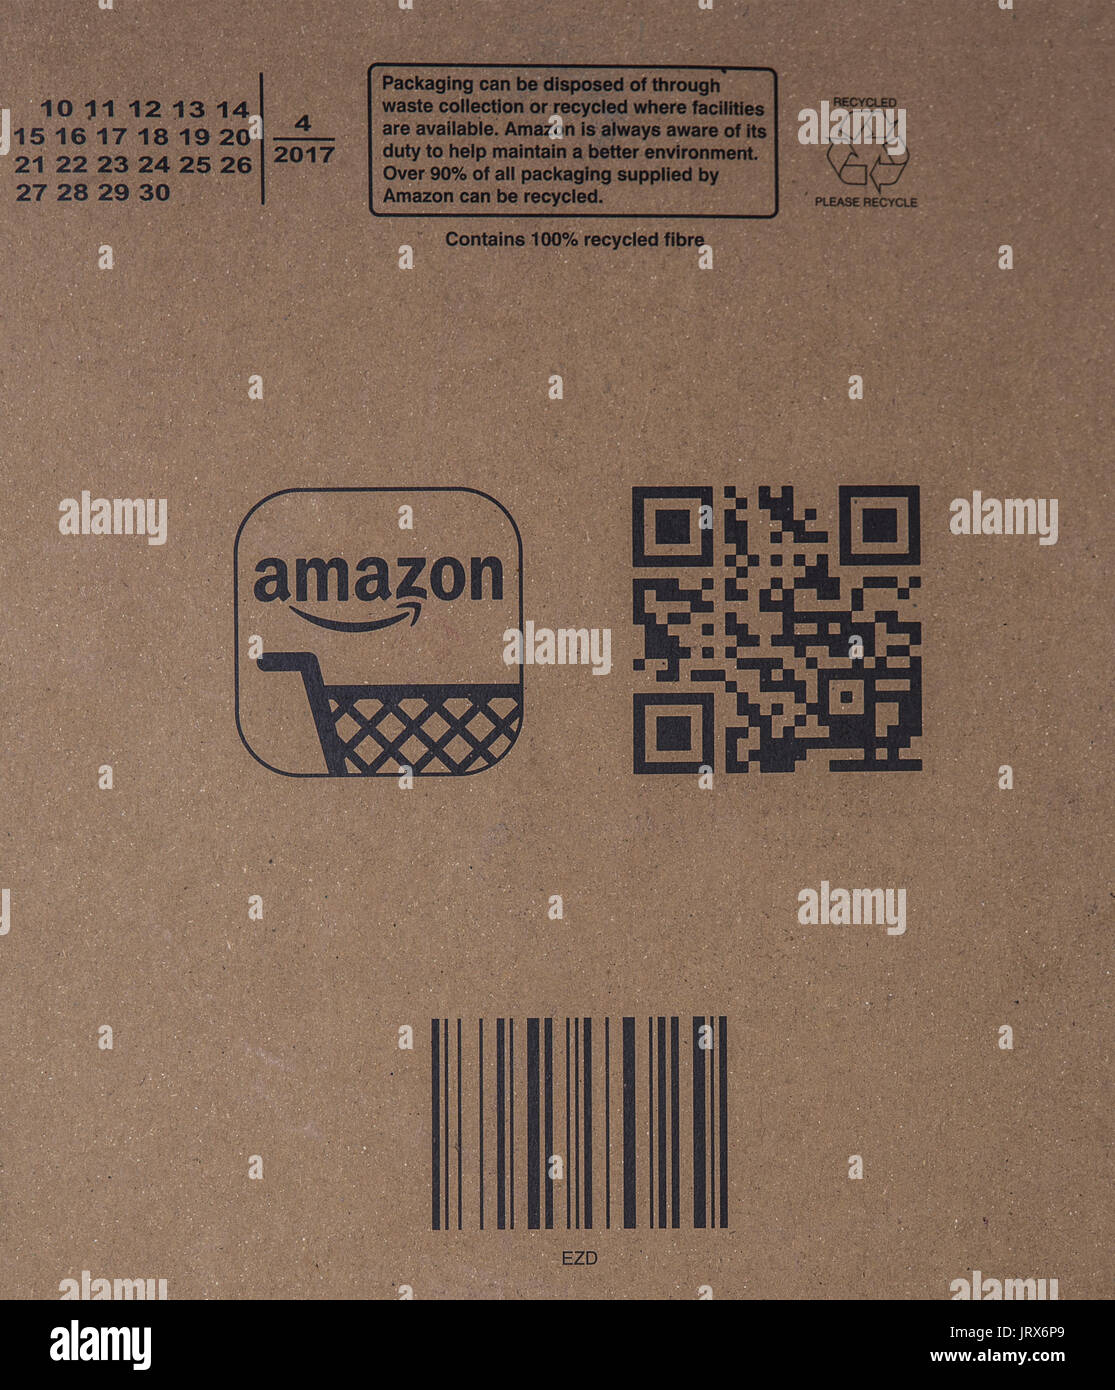 SWINDON, UK - AUGUST 6, 2017: Amazon package with bar Code and QRcode - Stock Image